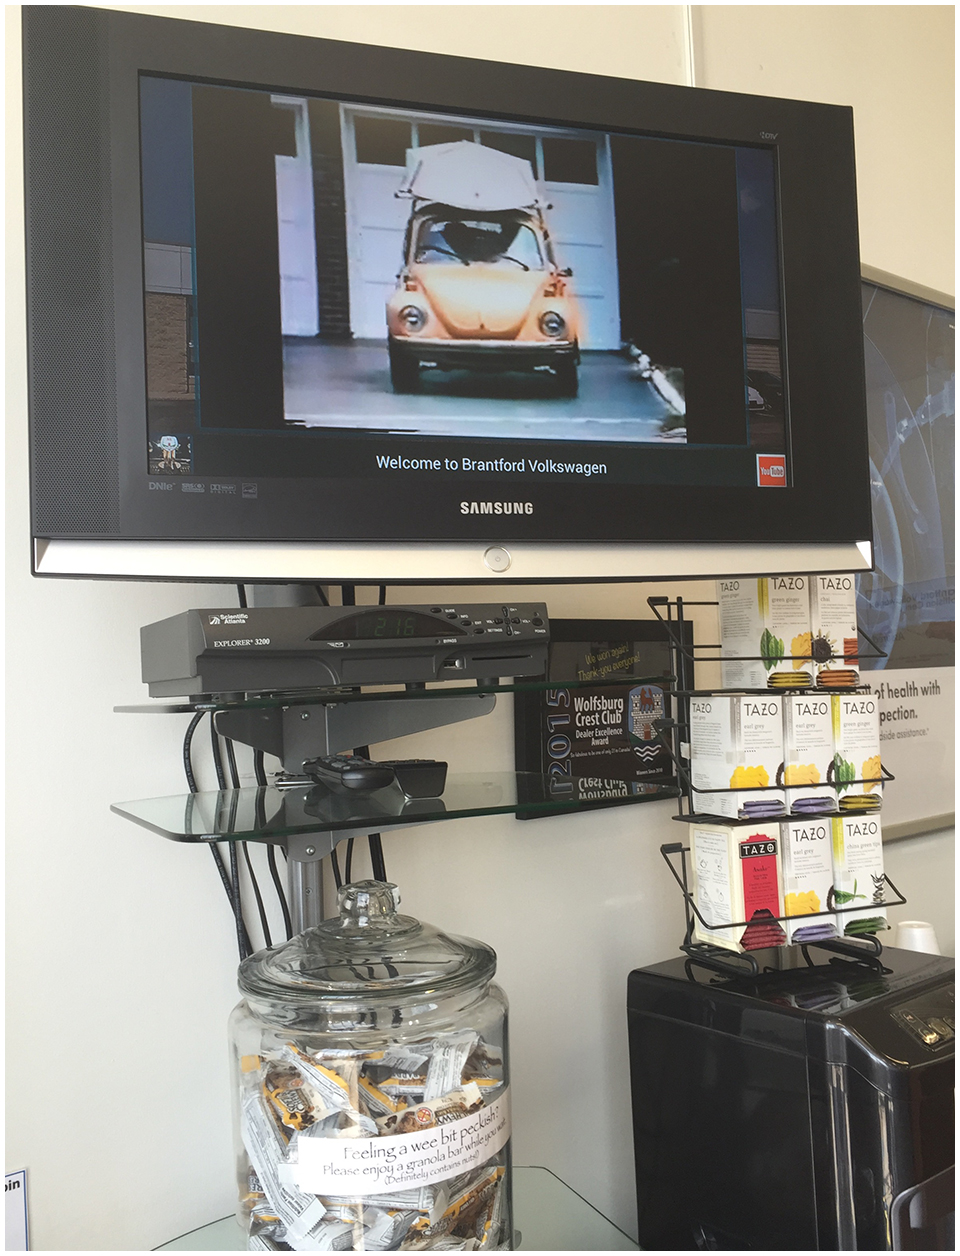 Brantford Volkswagen plays classic VW ads while you wait